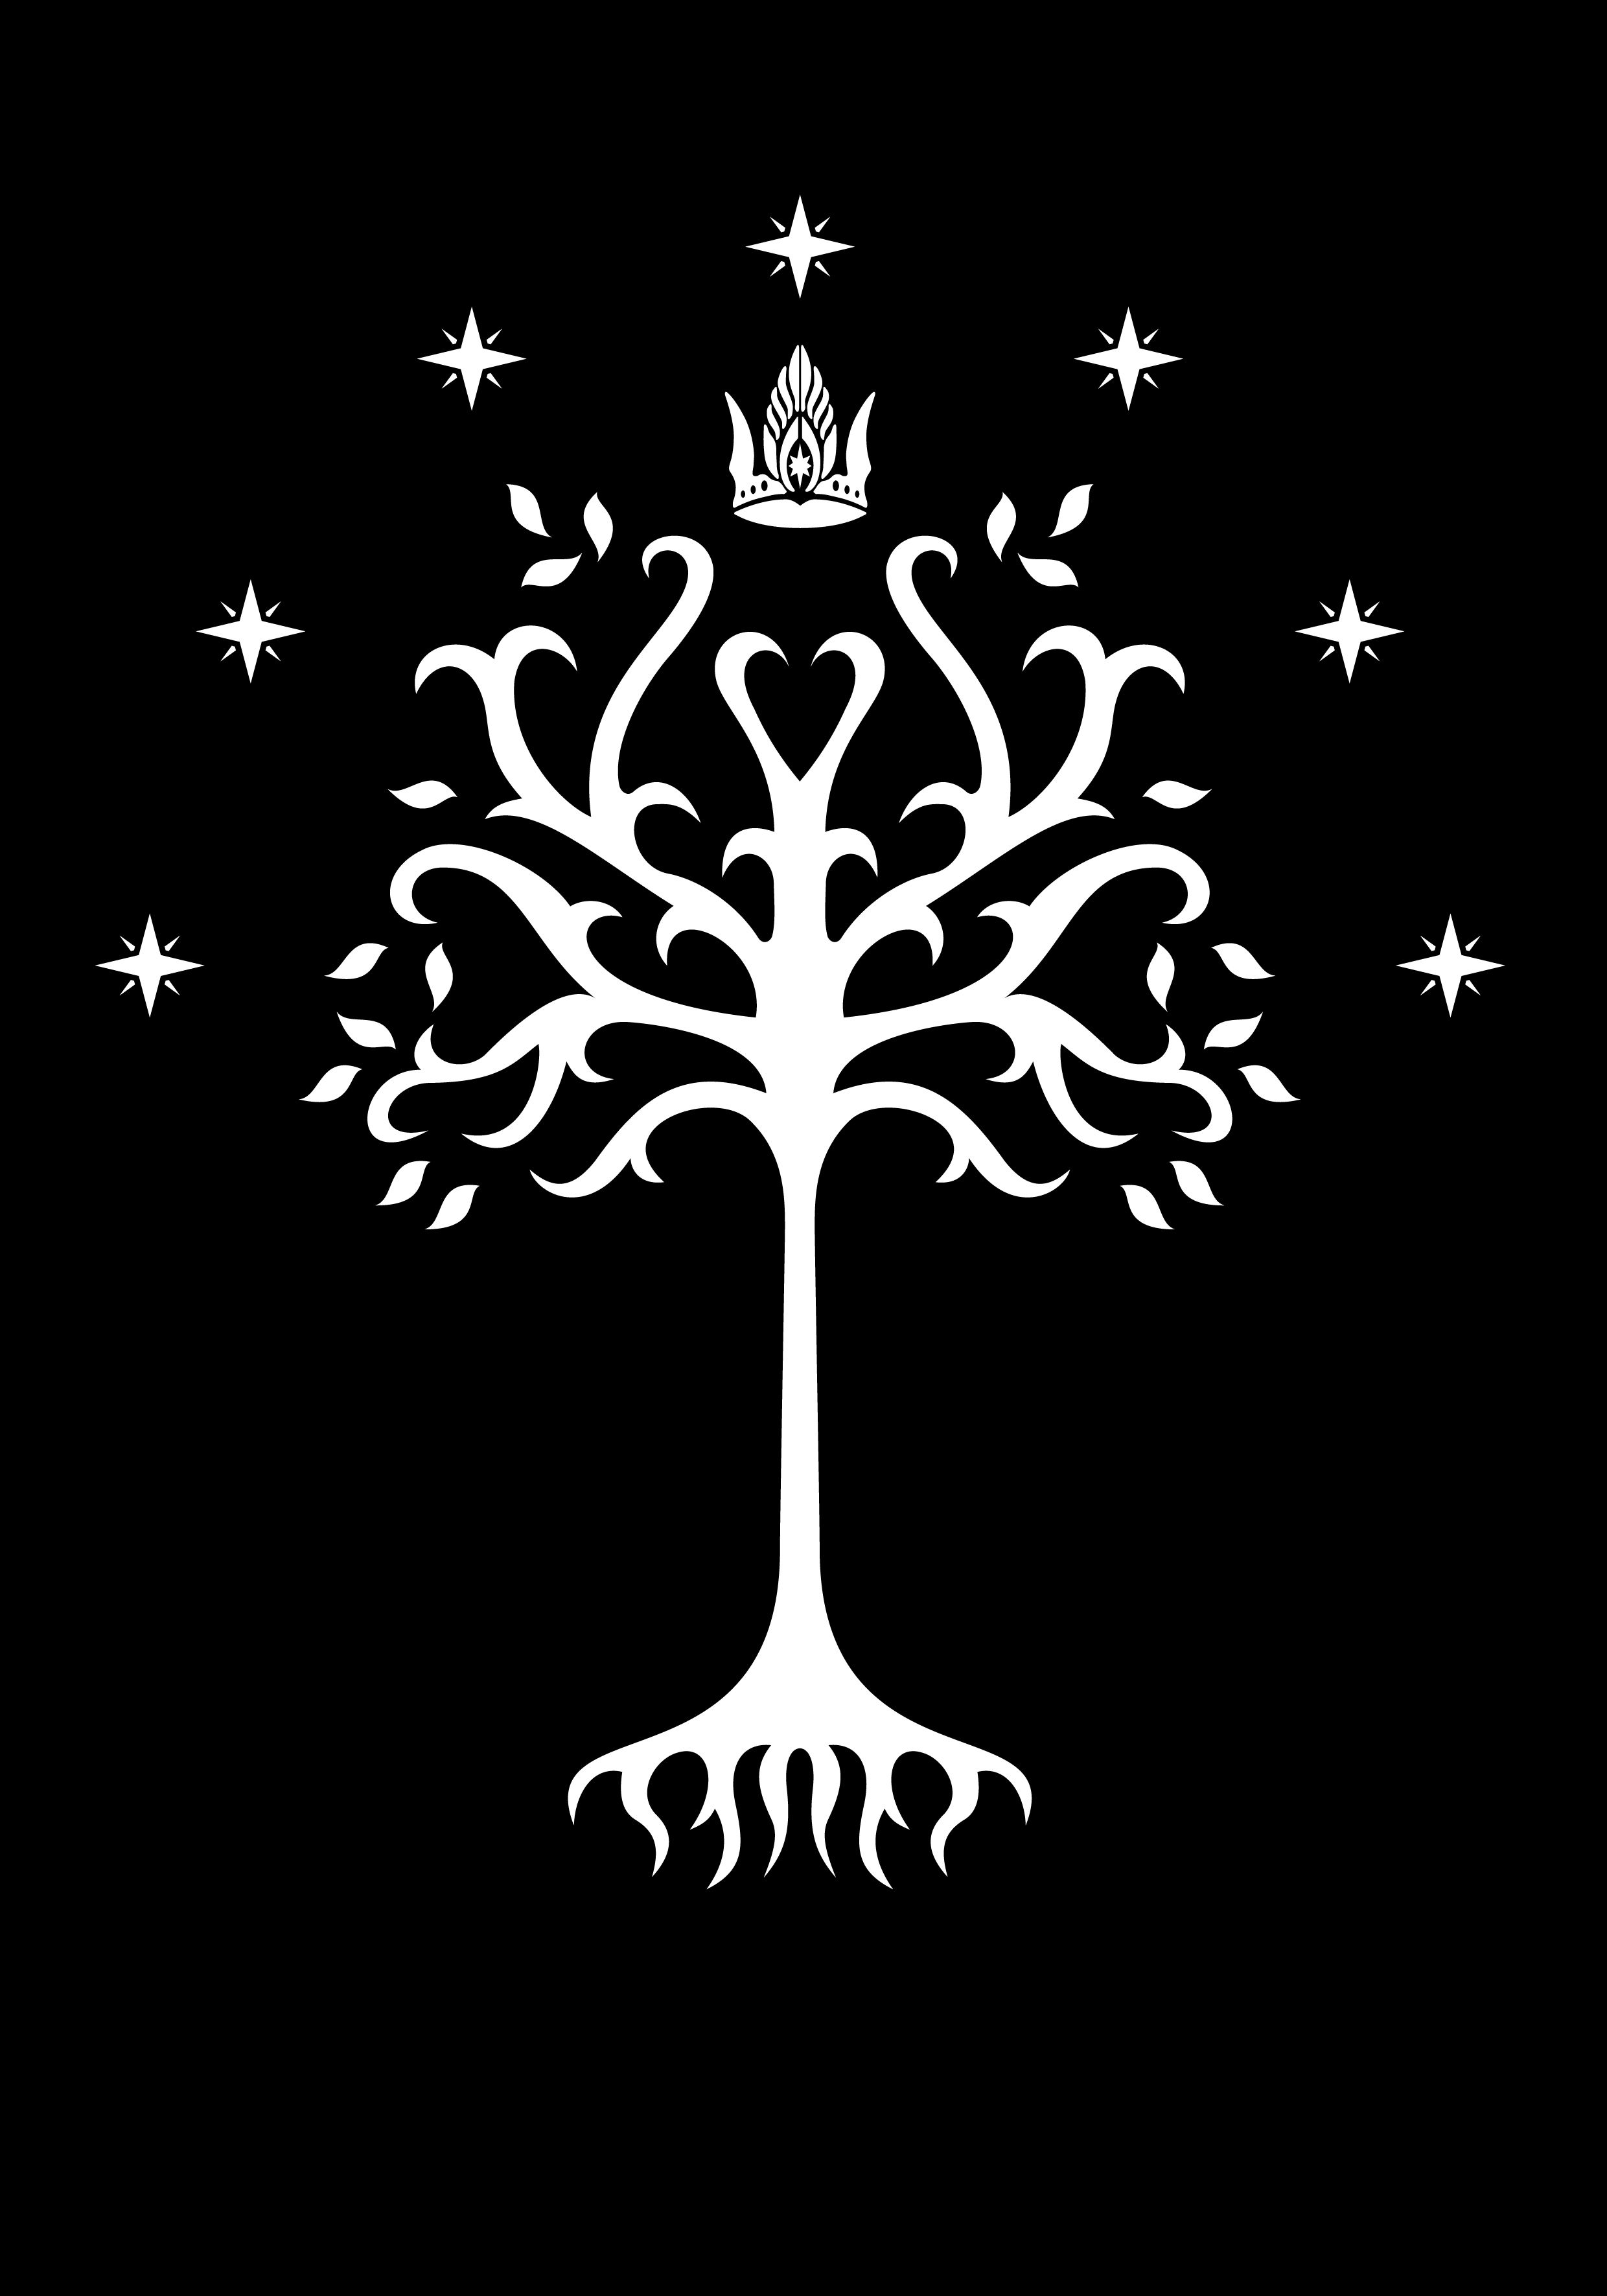 White Tree of Gondor from the Peter Jackson movie